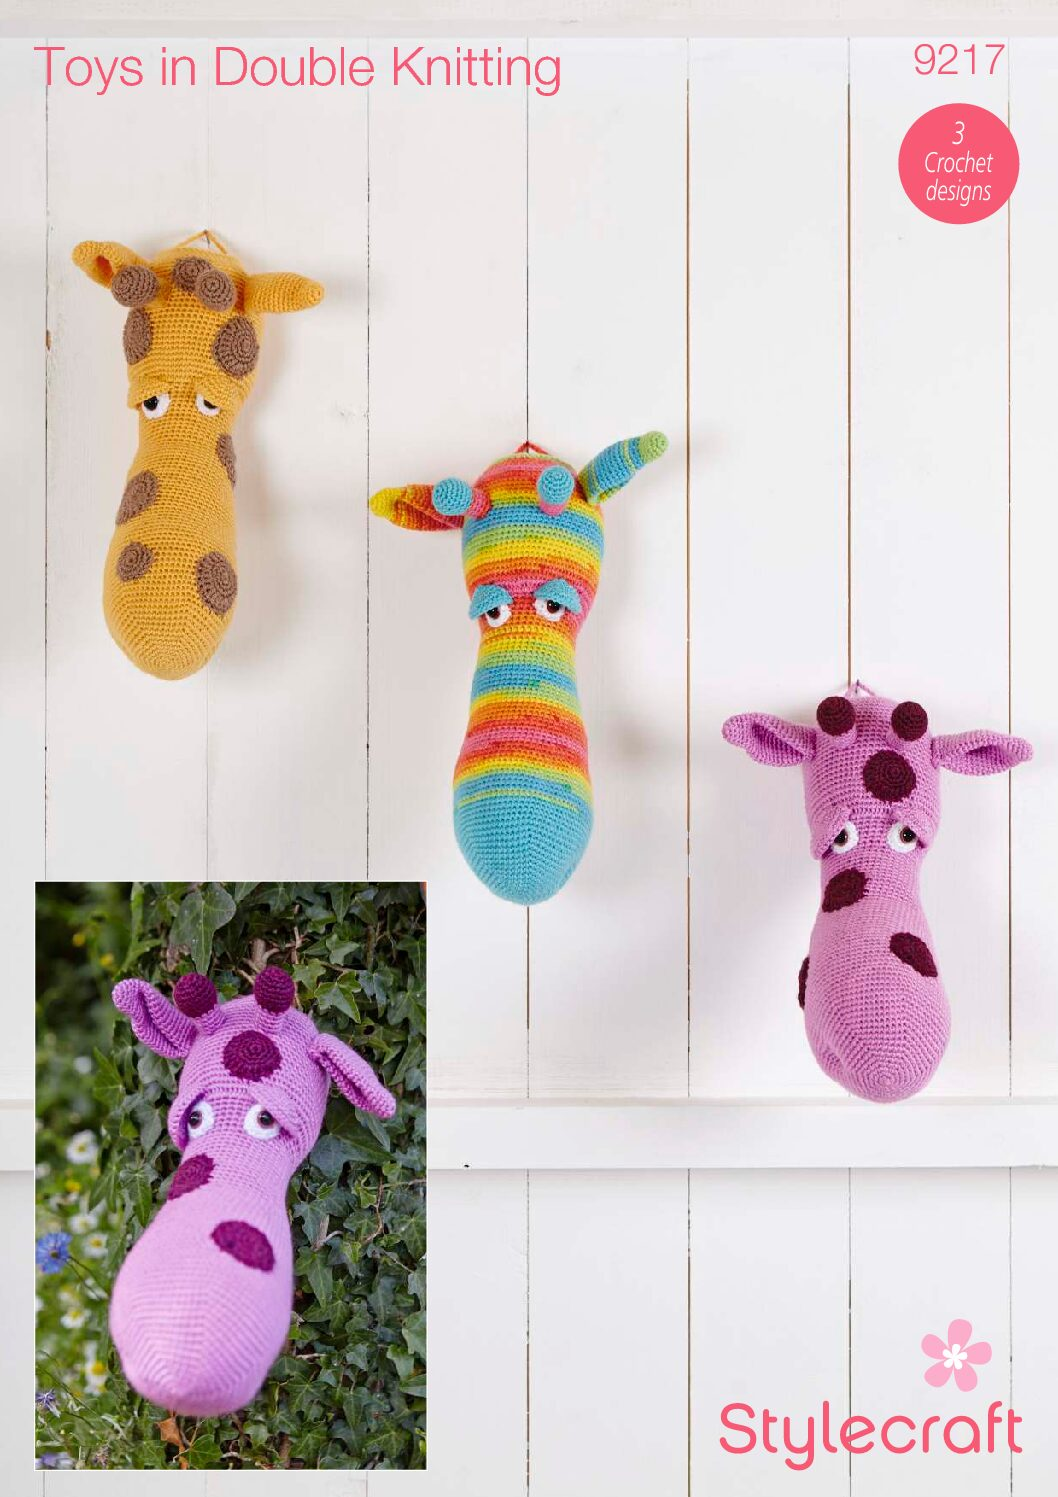 Stylecraft Pattern Toys 9217 (download) product image